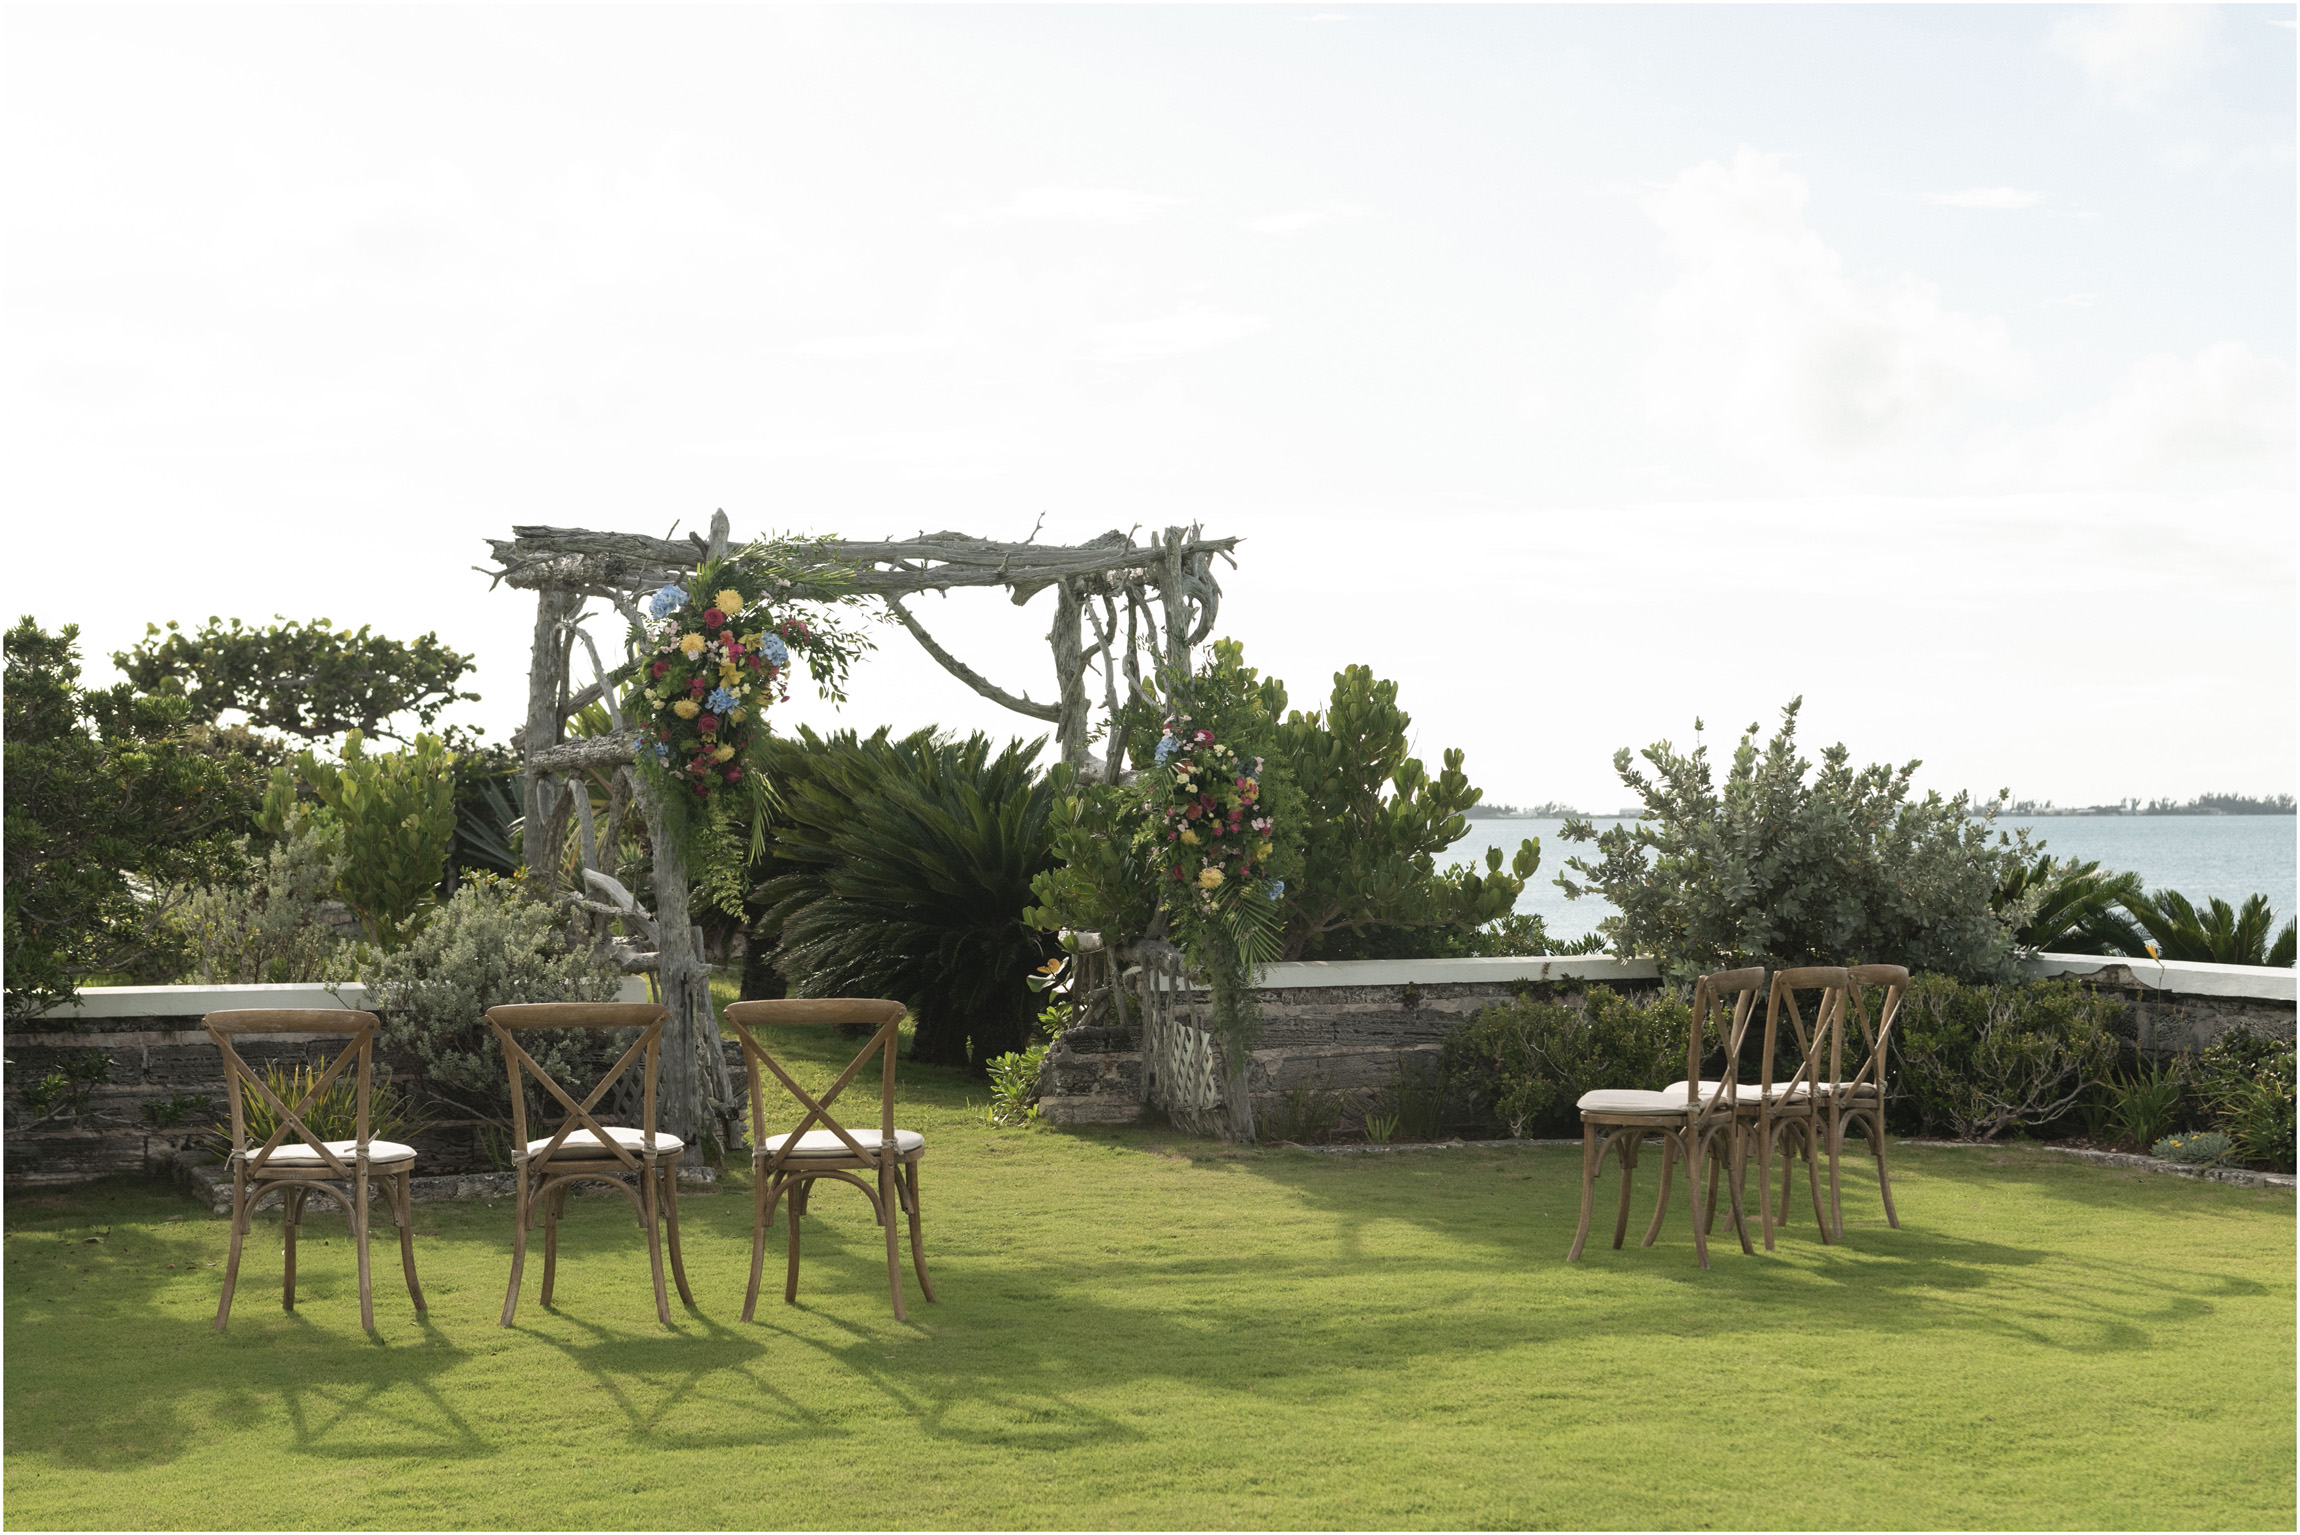 ©FianderFoto_Bermuda_Wedding_Photographer_Long_Island_Bermuda_Nancy_Ray_056.jpg